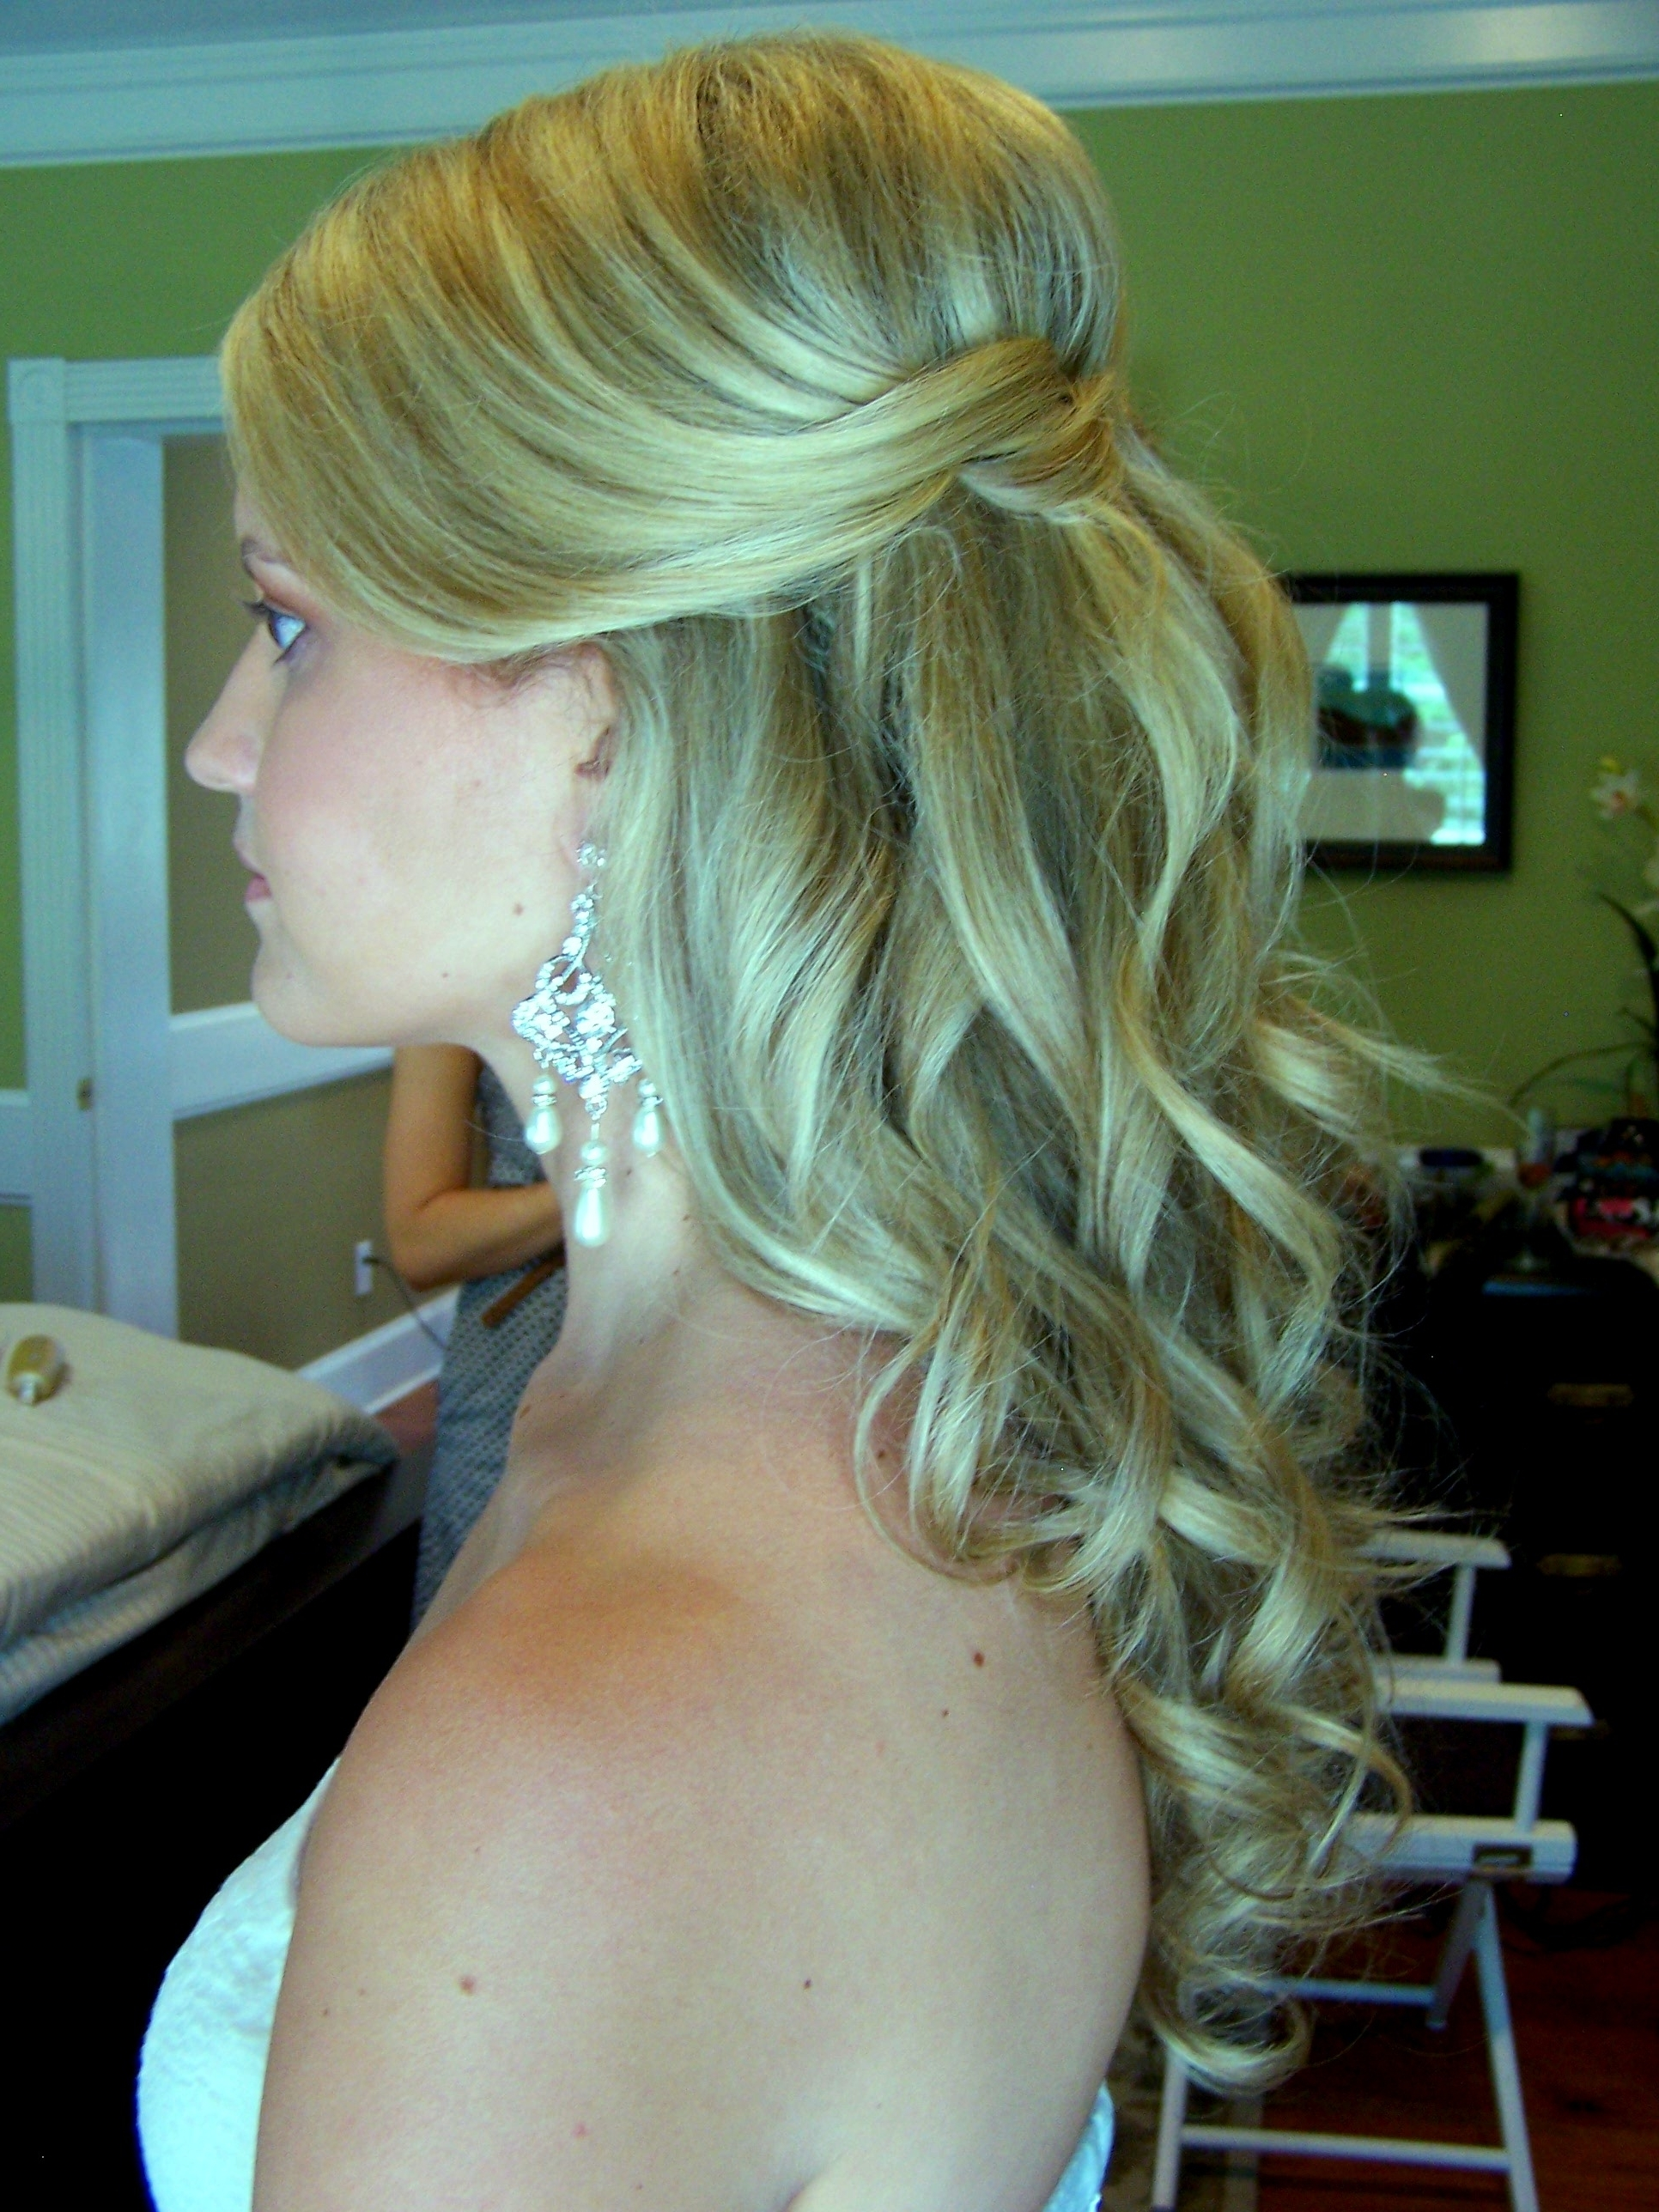 Justswimfl Regarding Famous Half Up Half Down Wedding Hairstyles For Medium Length Hair With Fringe (View 6 of 15)